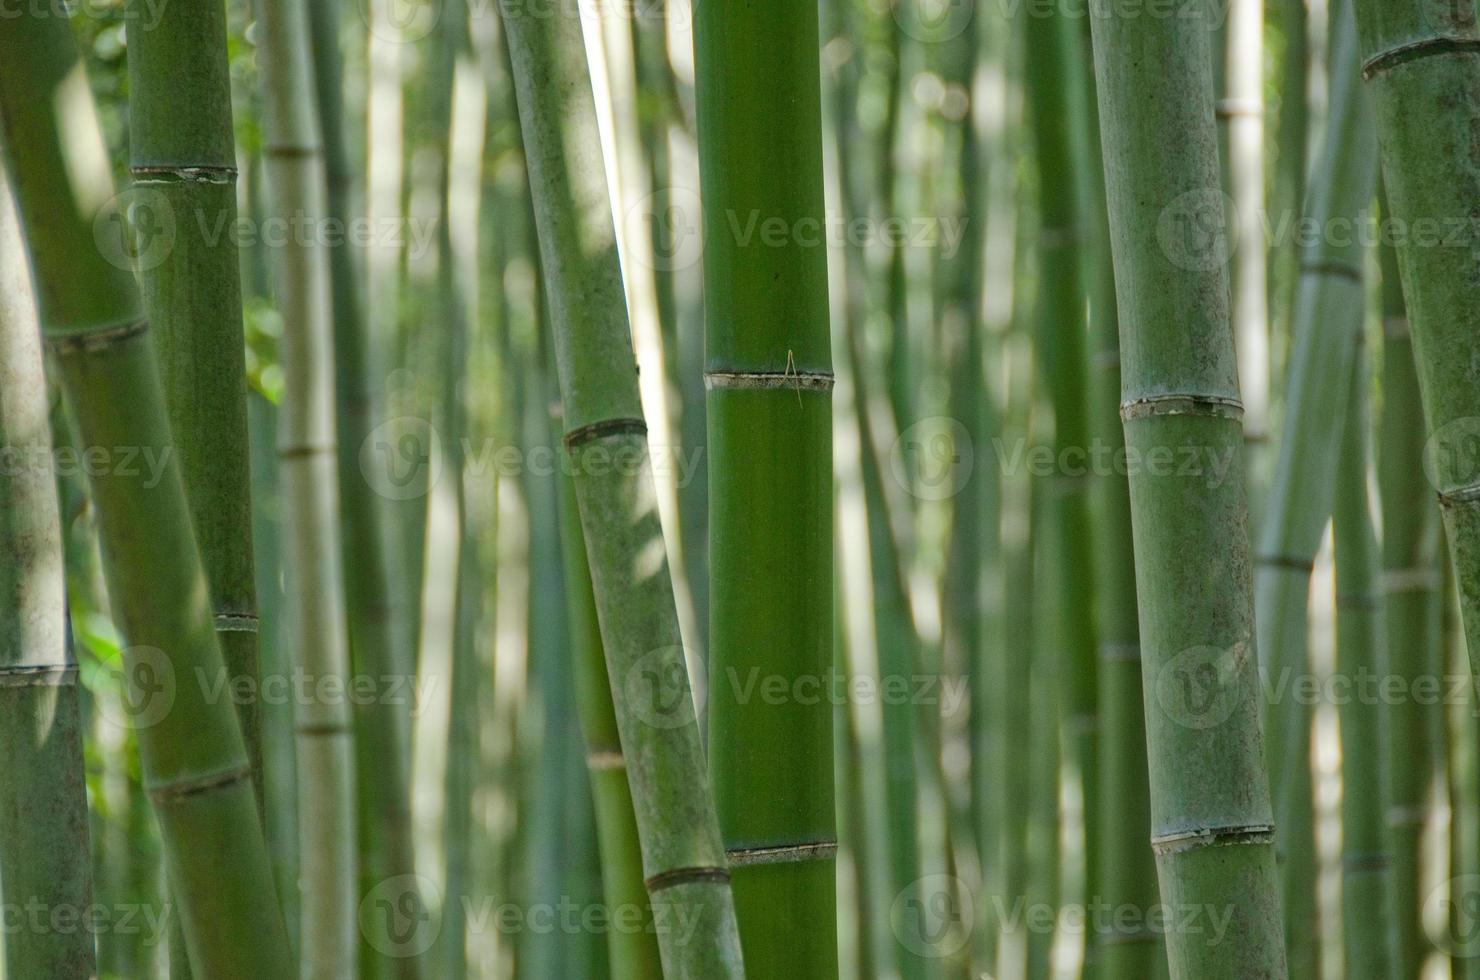 Bamboo forest seen from the side photo